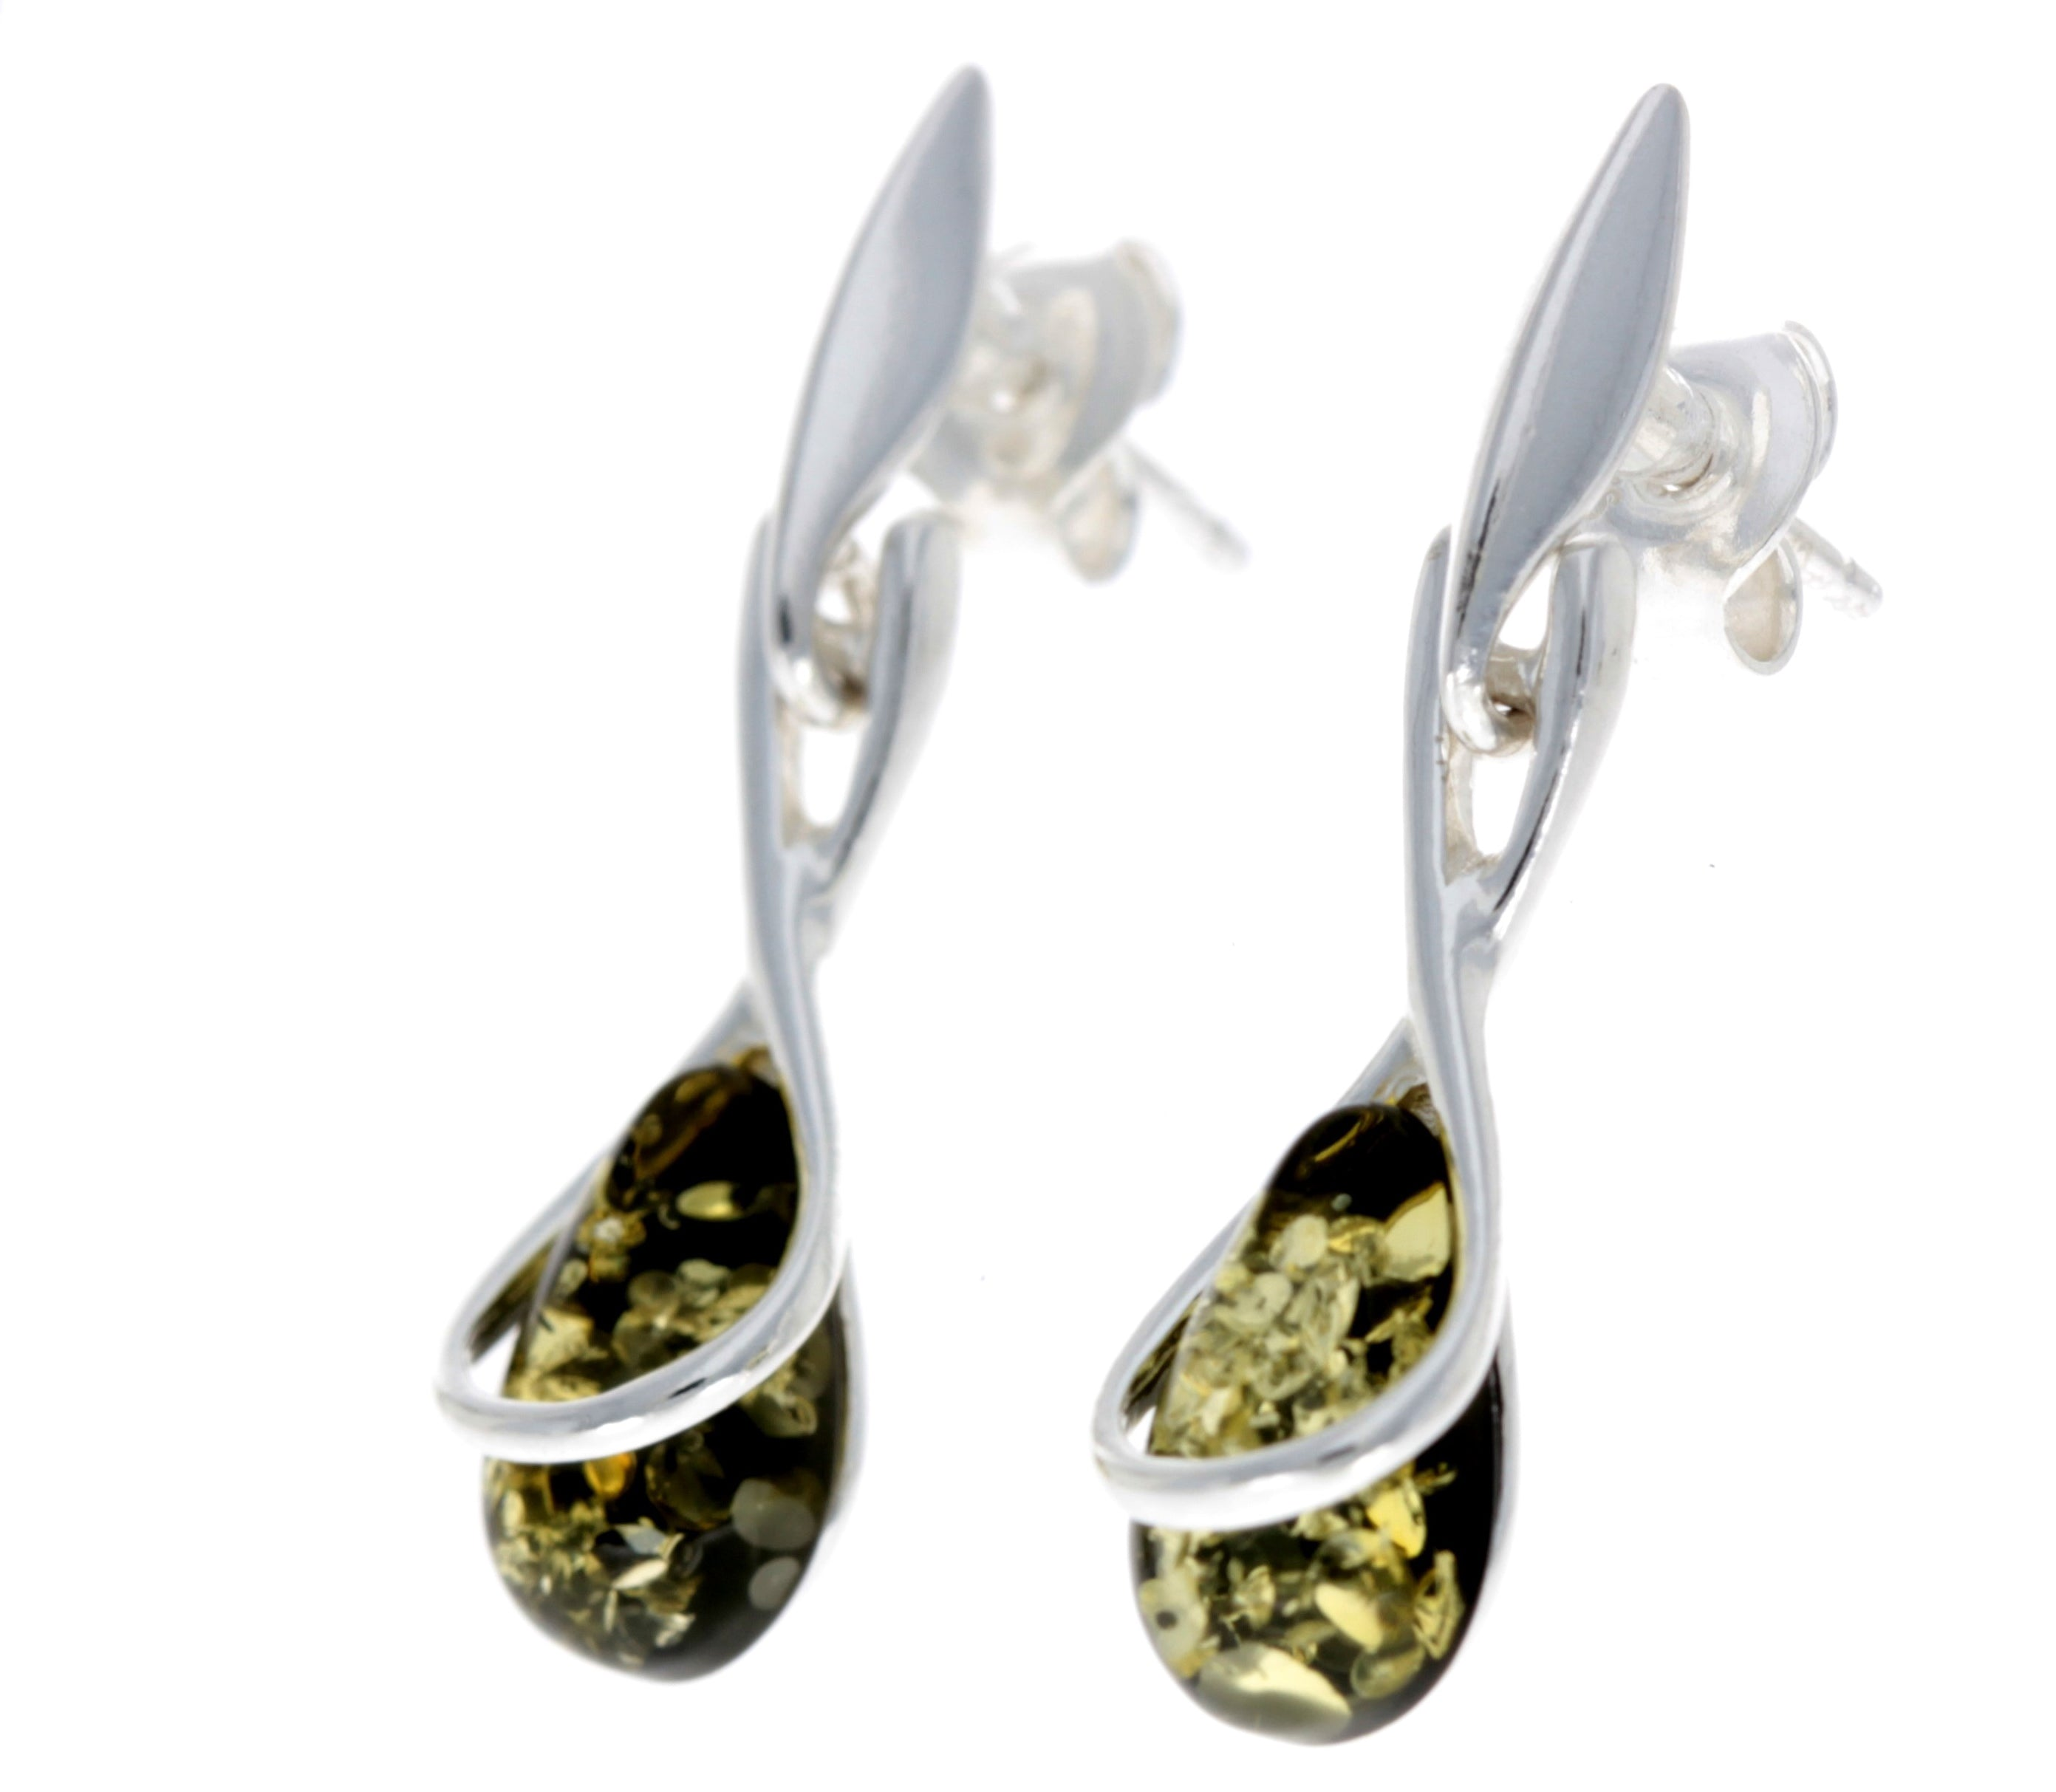 925 Sterling Silver with Amber Modern Drop Earrings - GL151